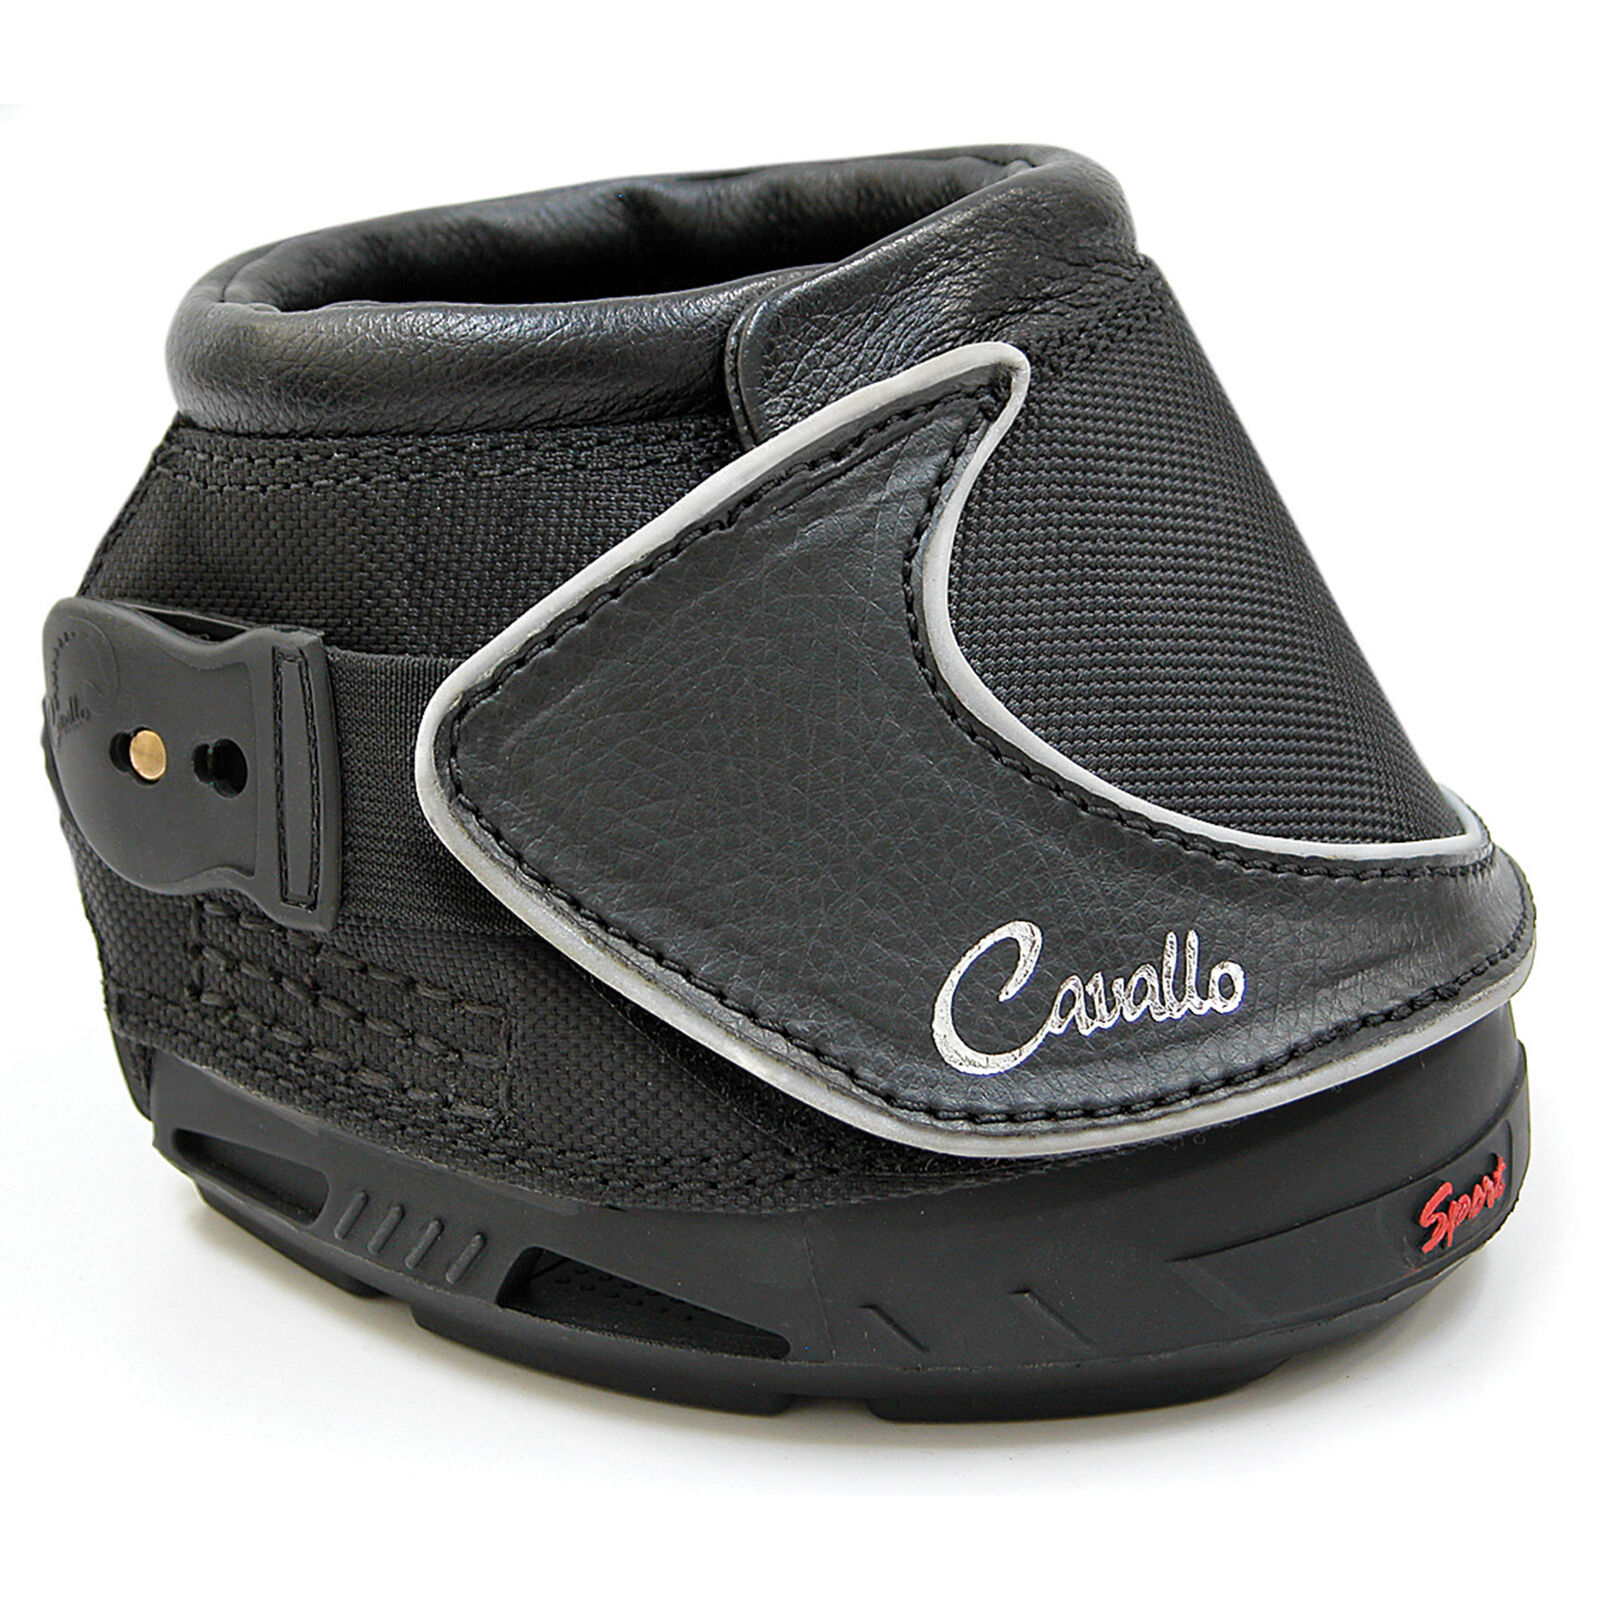 Cavallo Sport Regular Hoof Stiefel Lightweight for Arena or Trails Sold in Pairs